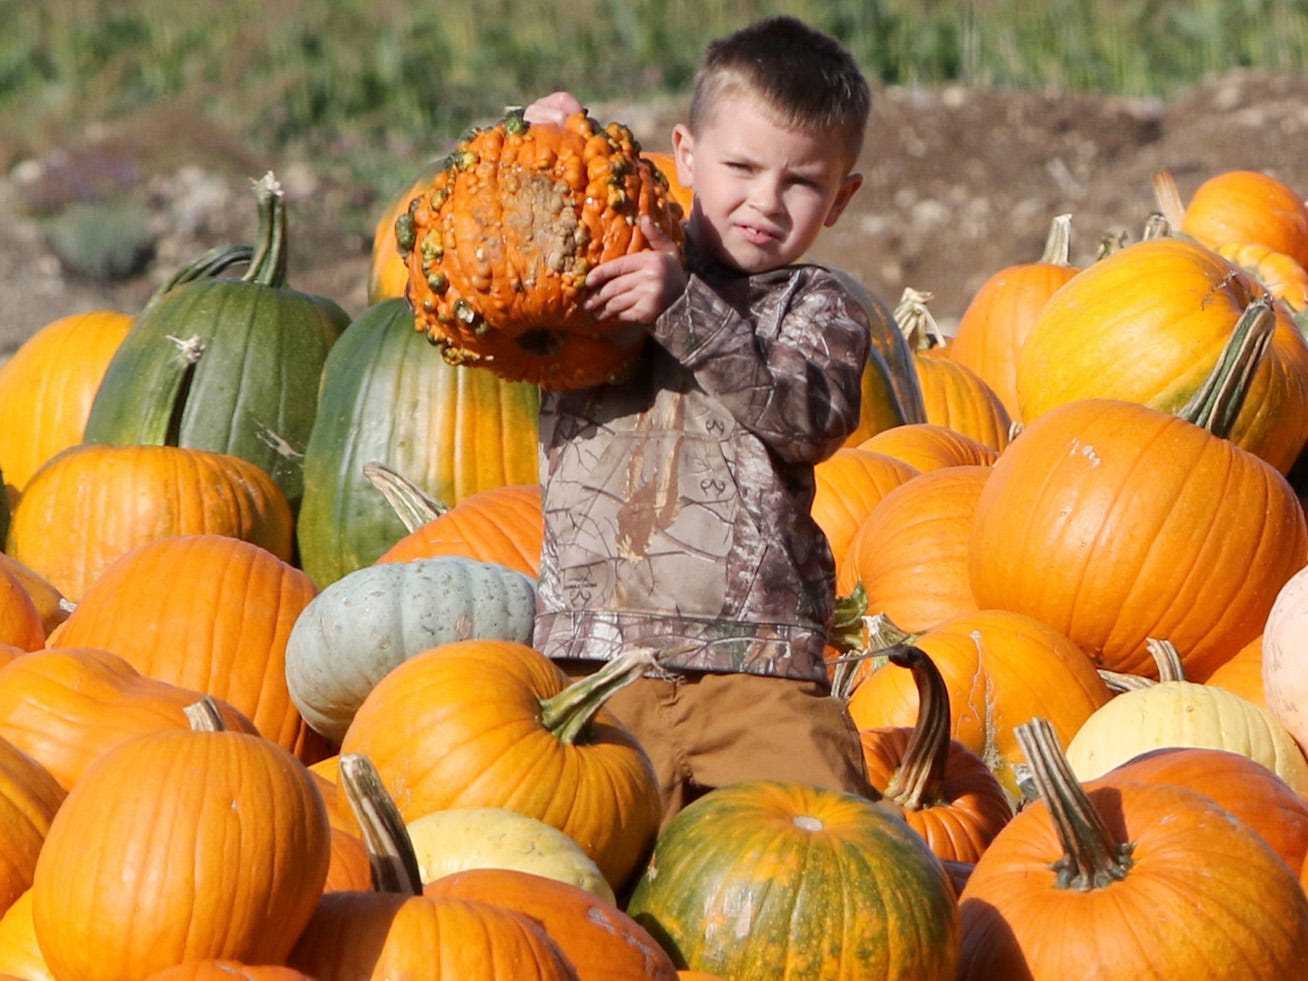 Braxton Marshall, 6, of Shelton, holds up his choice after exploring a pile of pumpkins at Hunter Farms.